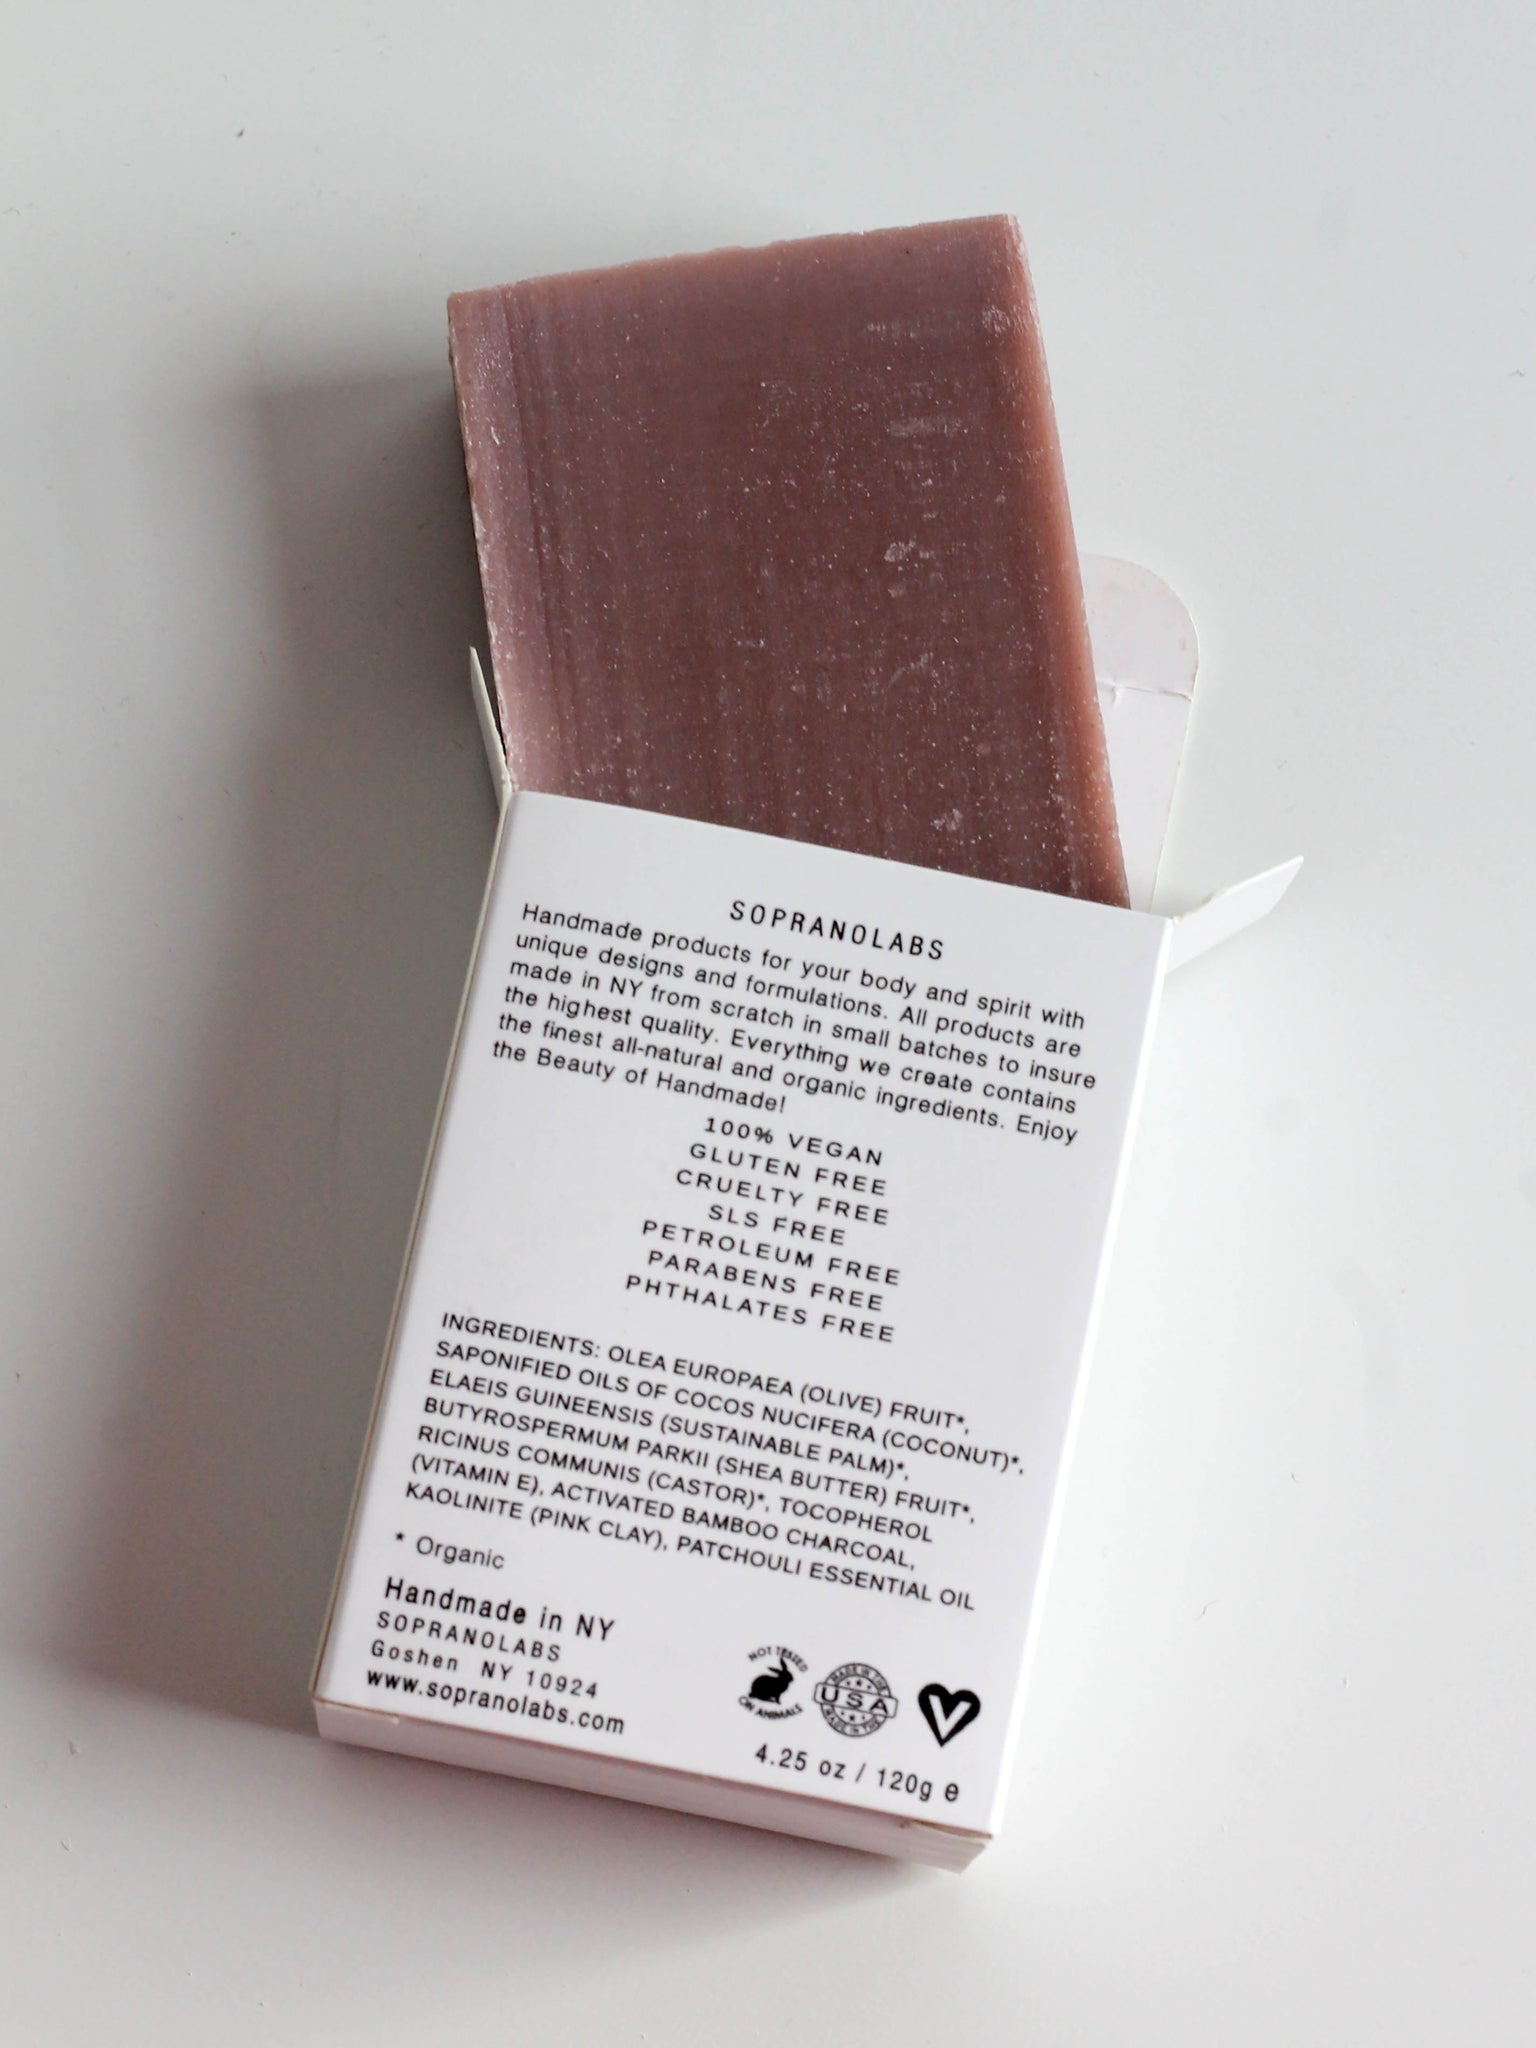 SOPRANO LABS PATCHOULI PINK CLAY SOAP